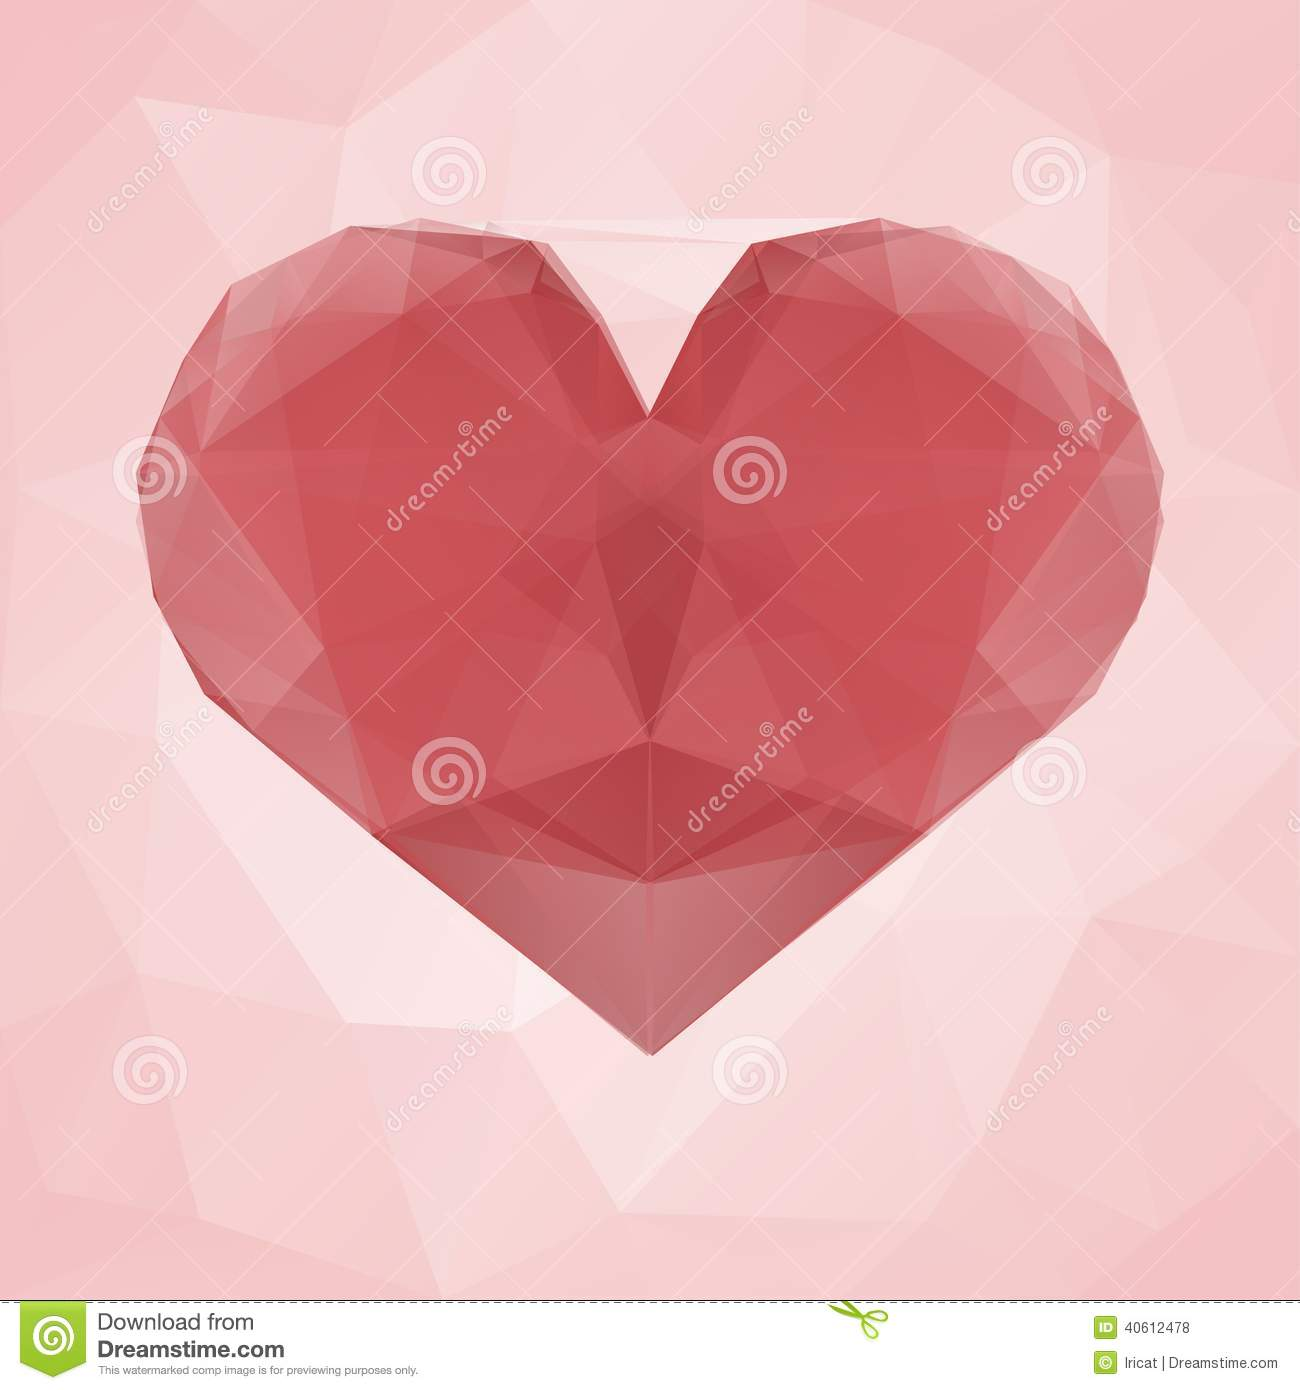 Red Heart Made Of Transparent Triangles On A Pink Abstract